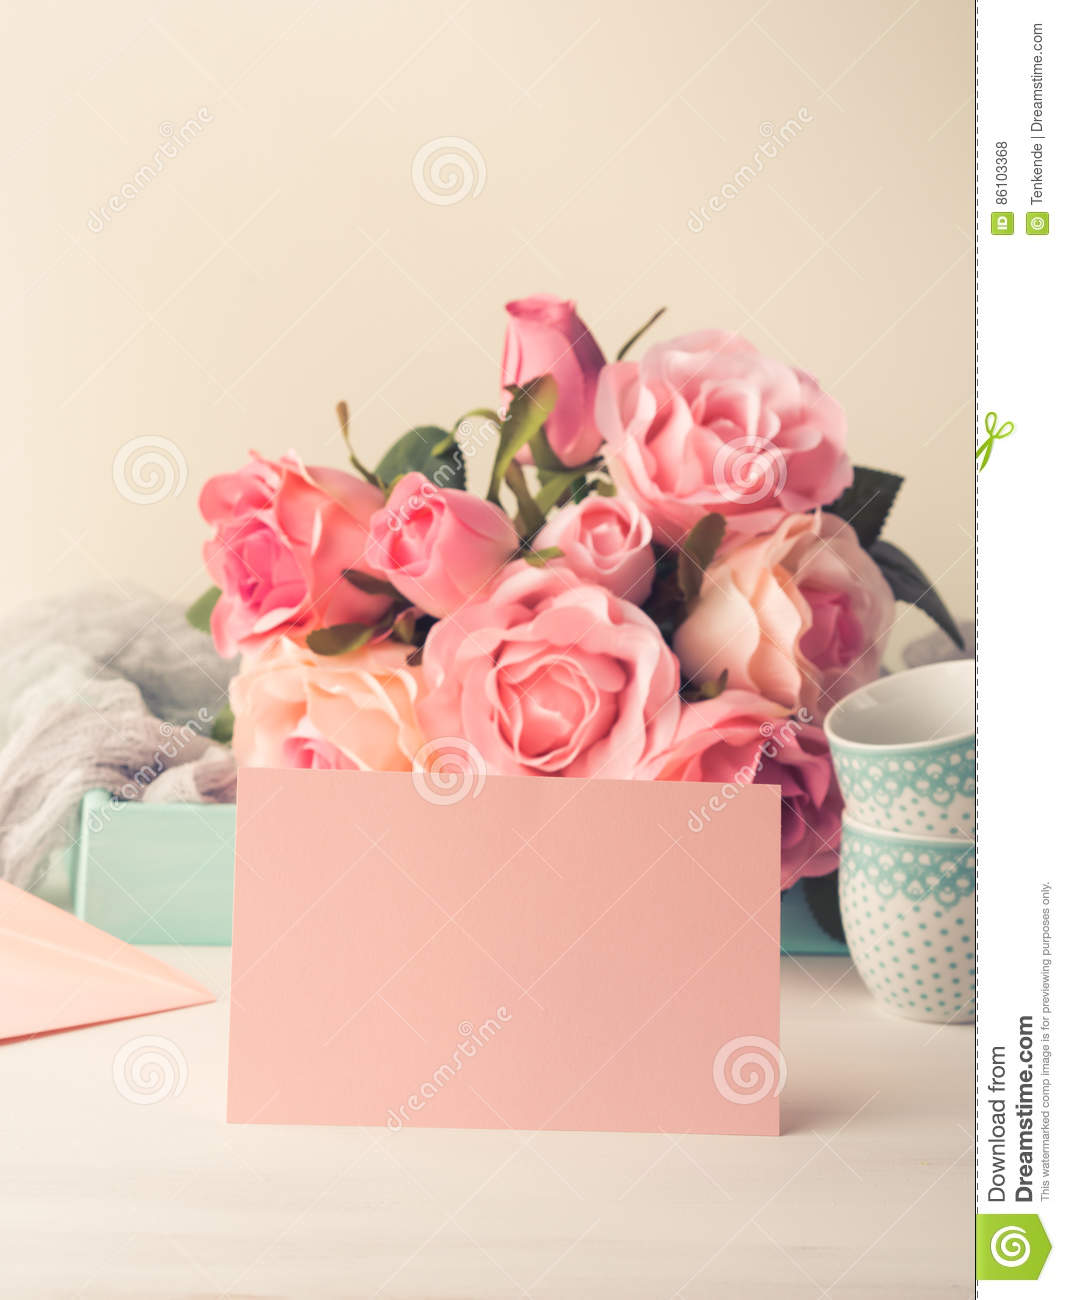 Valentines Day Card On Pink Roses Vector Illustration